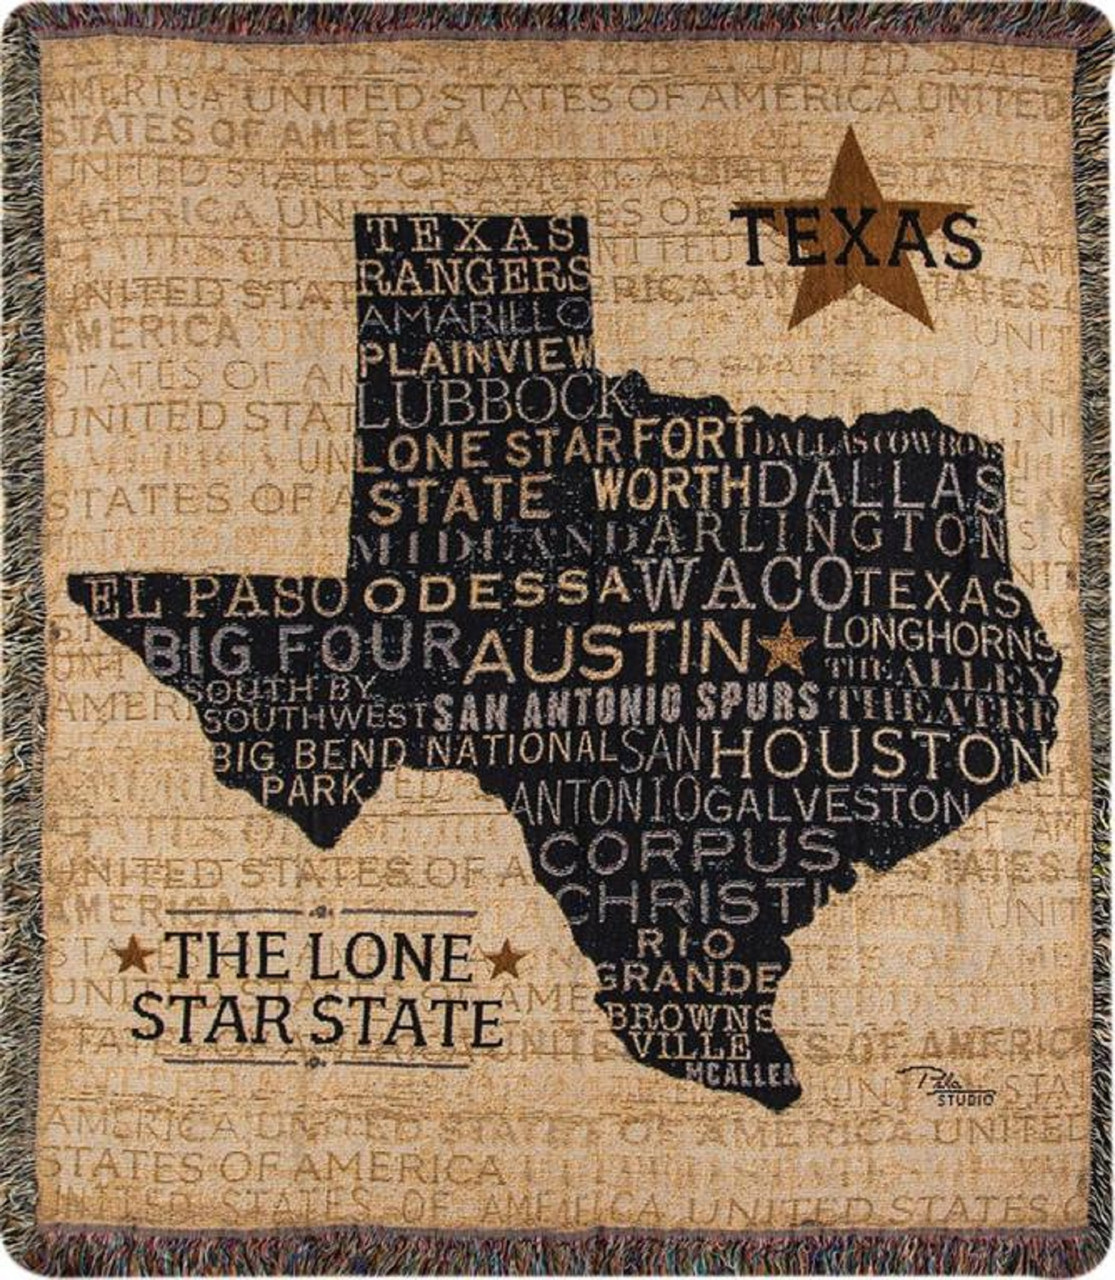 Simply Home Texas Lone Star State Tapestry Throw Blanket Afghan 50 X 60 Usa Made Home Kitchen Blankets Throws Kalingauniversity Ac In